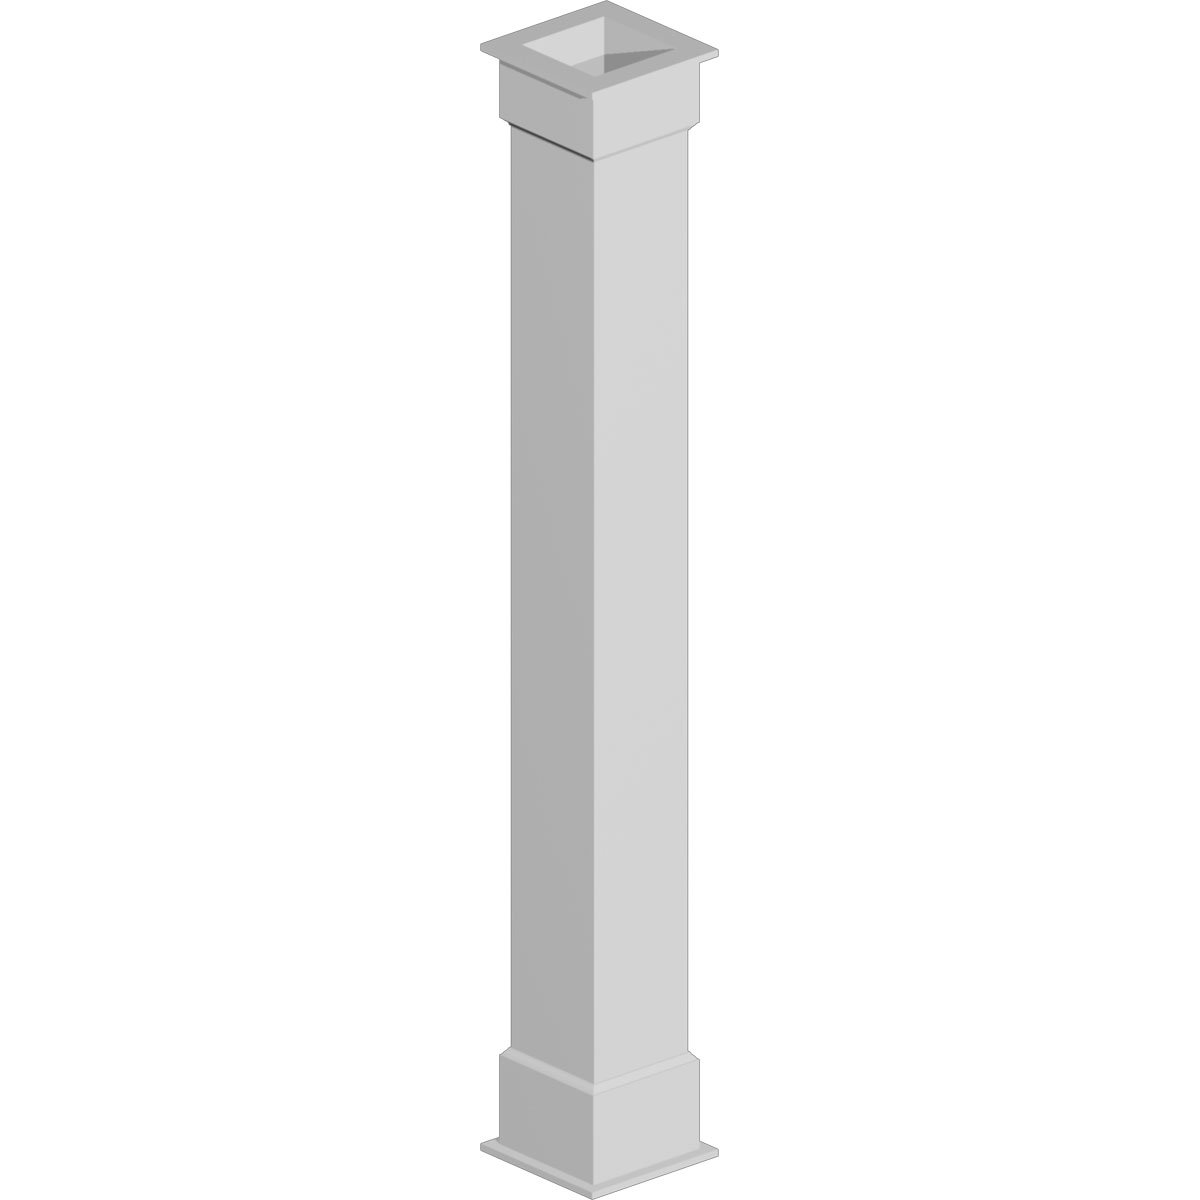 COLUMN WRAP KIT 12X72 P 1BX, NON TAPERED PLAIN